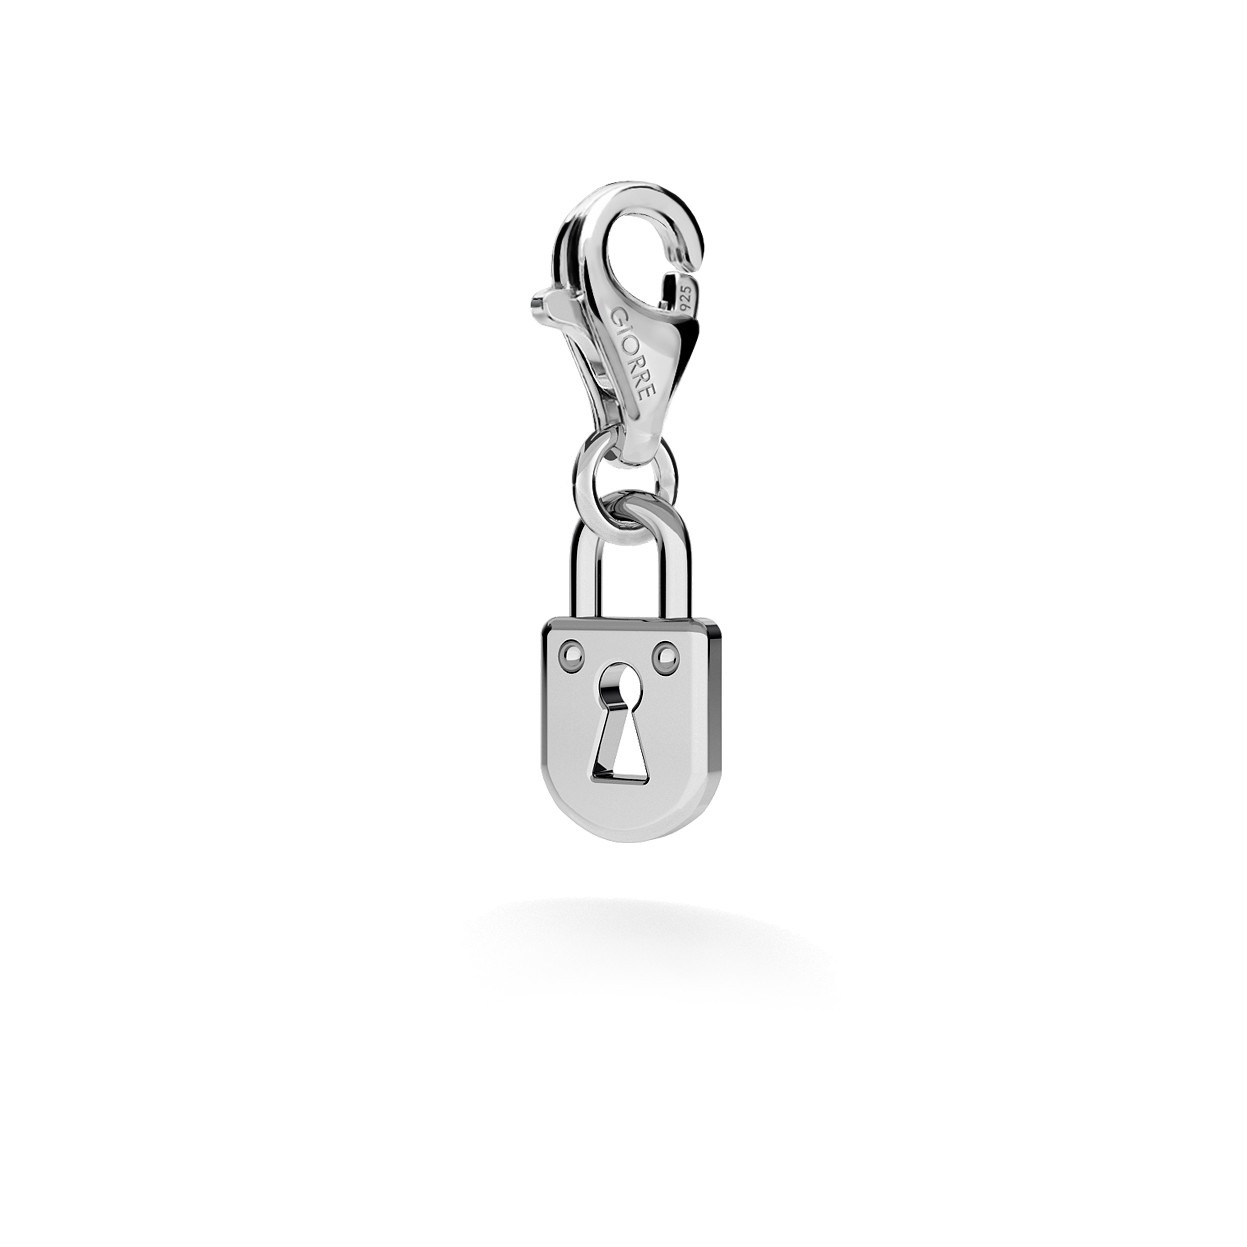 CHARM 89, PADLOCK, SILVER 925, RHODIUM OR GOLD PLATED